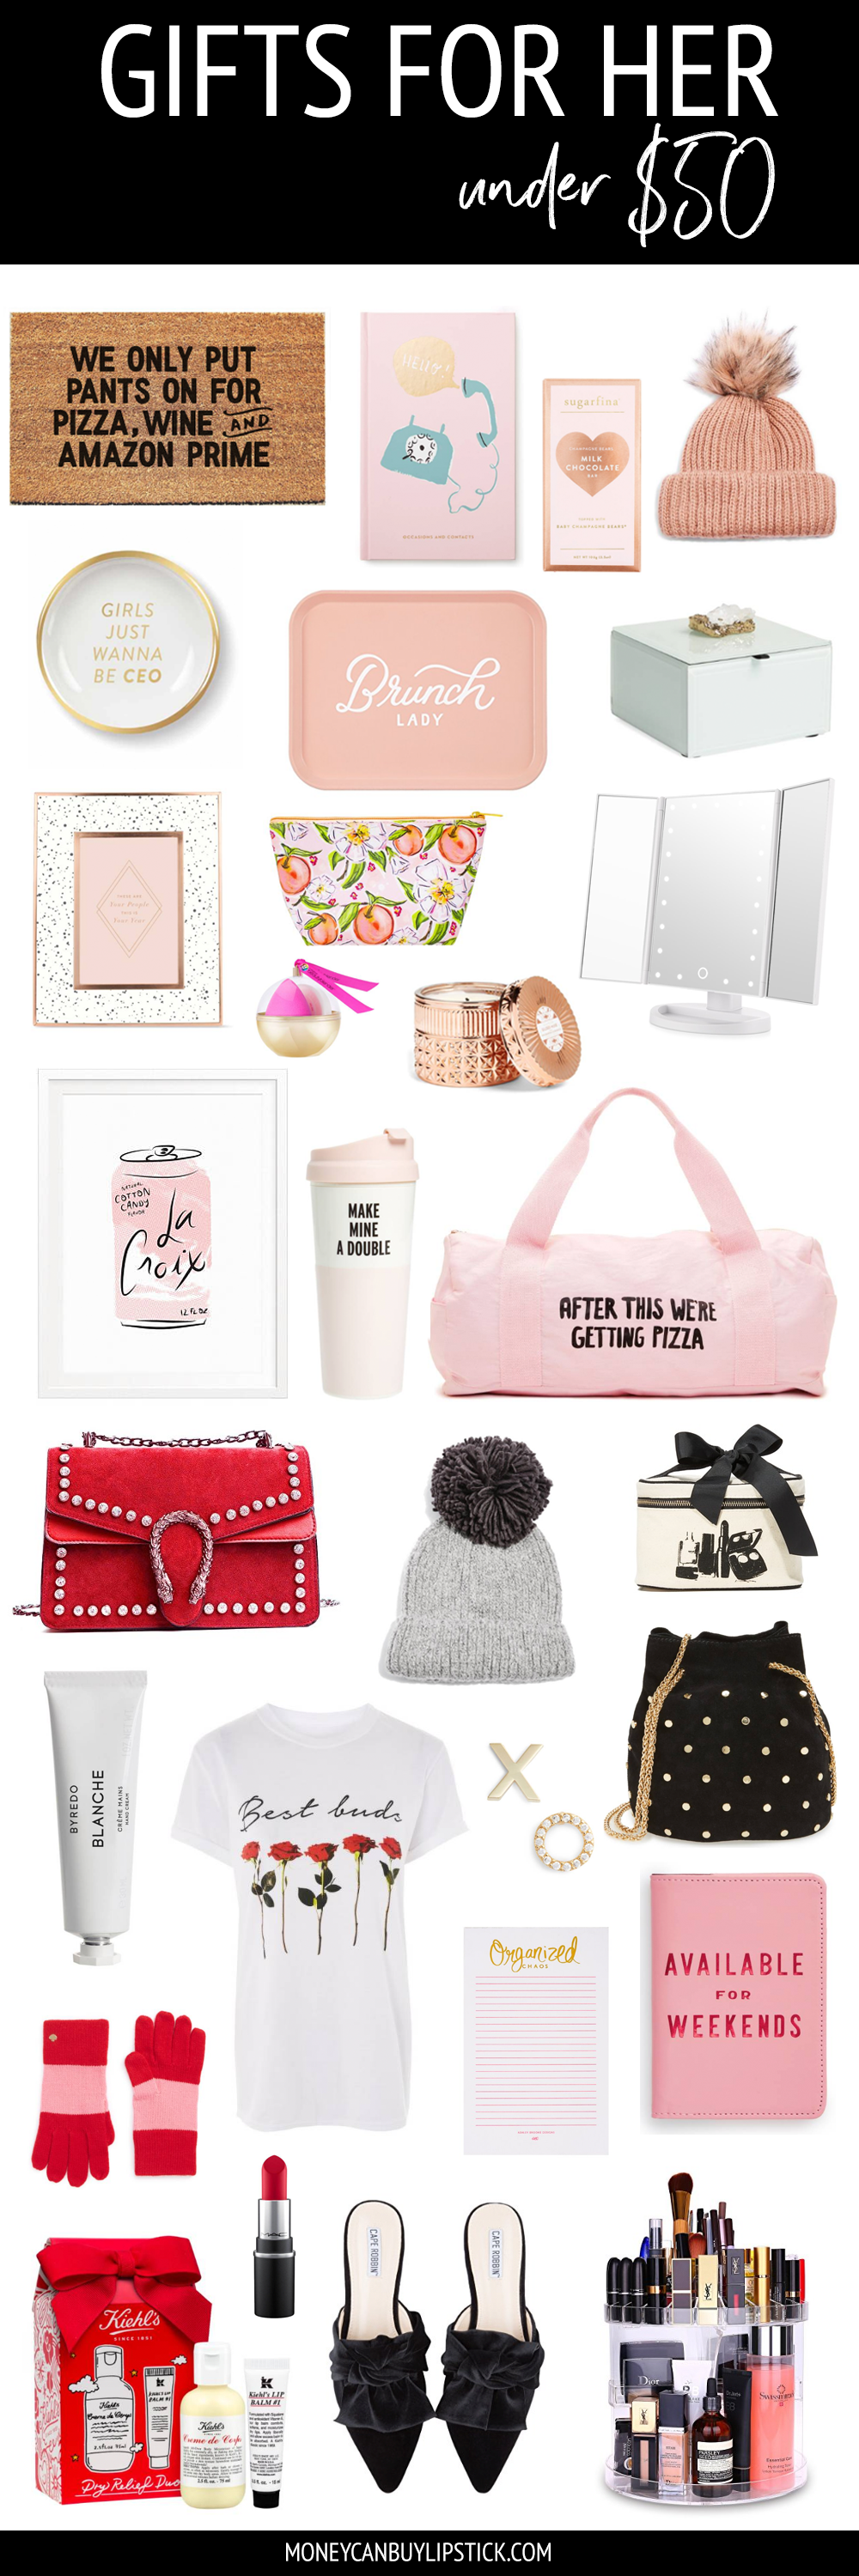 Gifts For Her: Under $50 | Pinterest | Christmas gifts, Girly and 50th